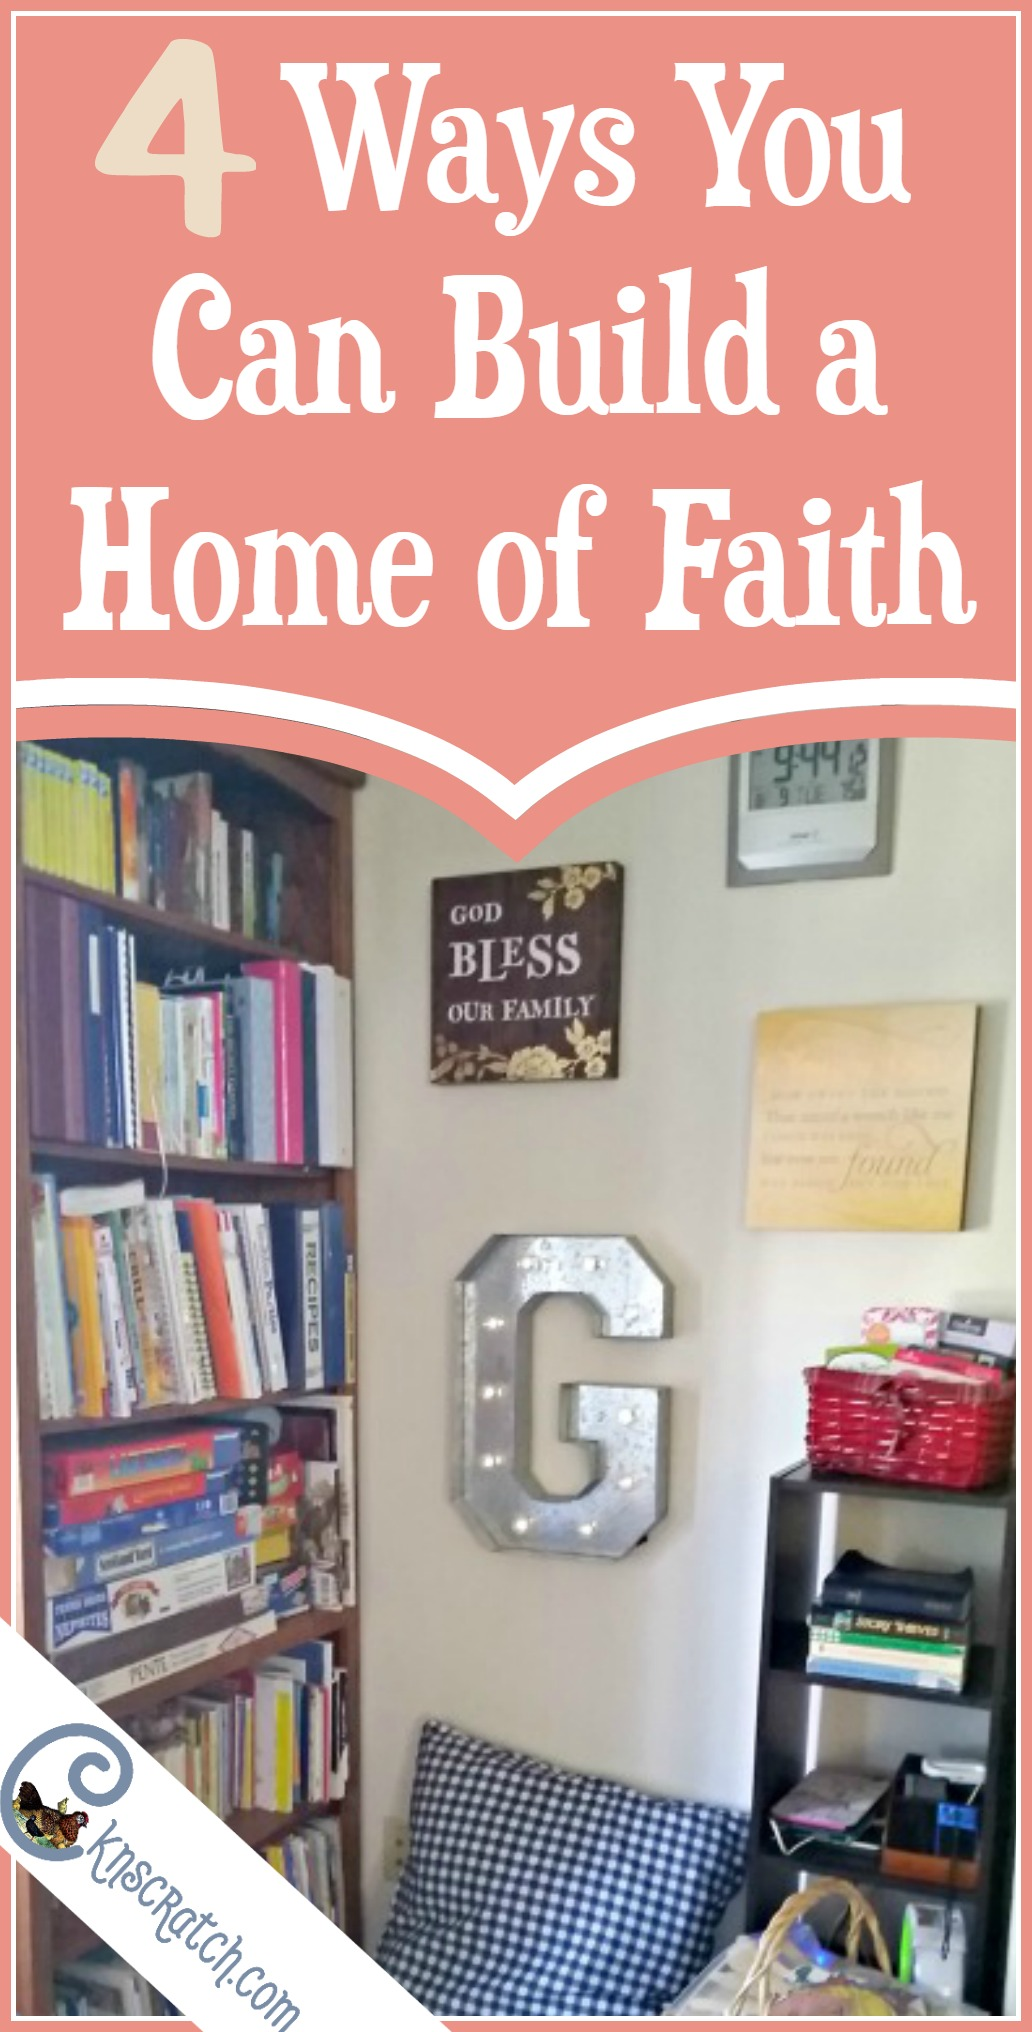 I love the sharing station idea! 4 ways to build a home of faith